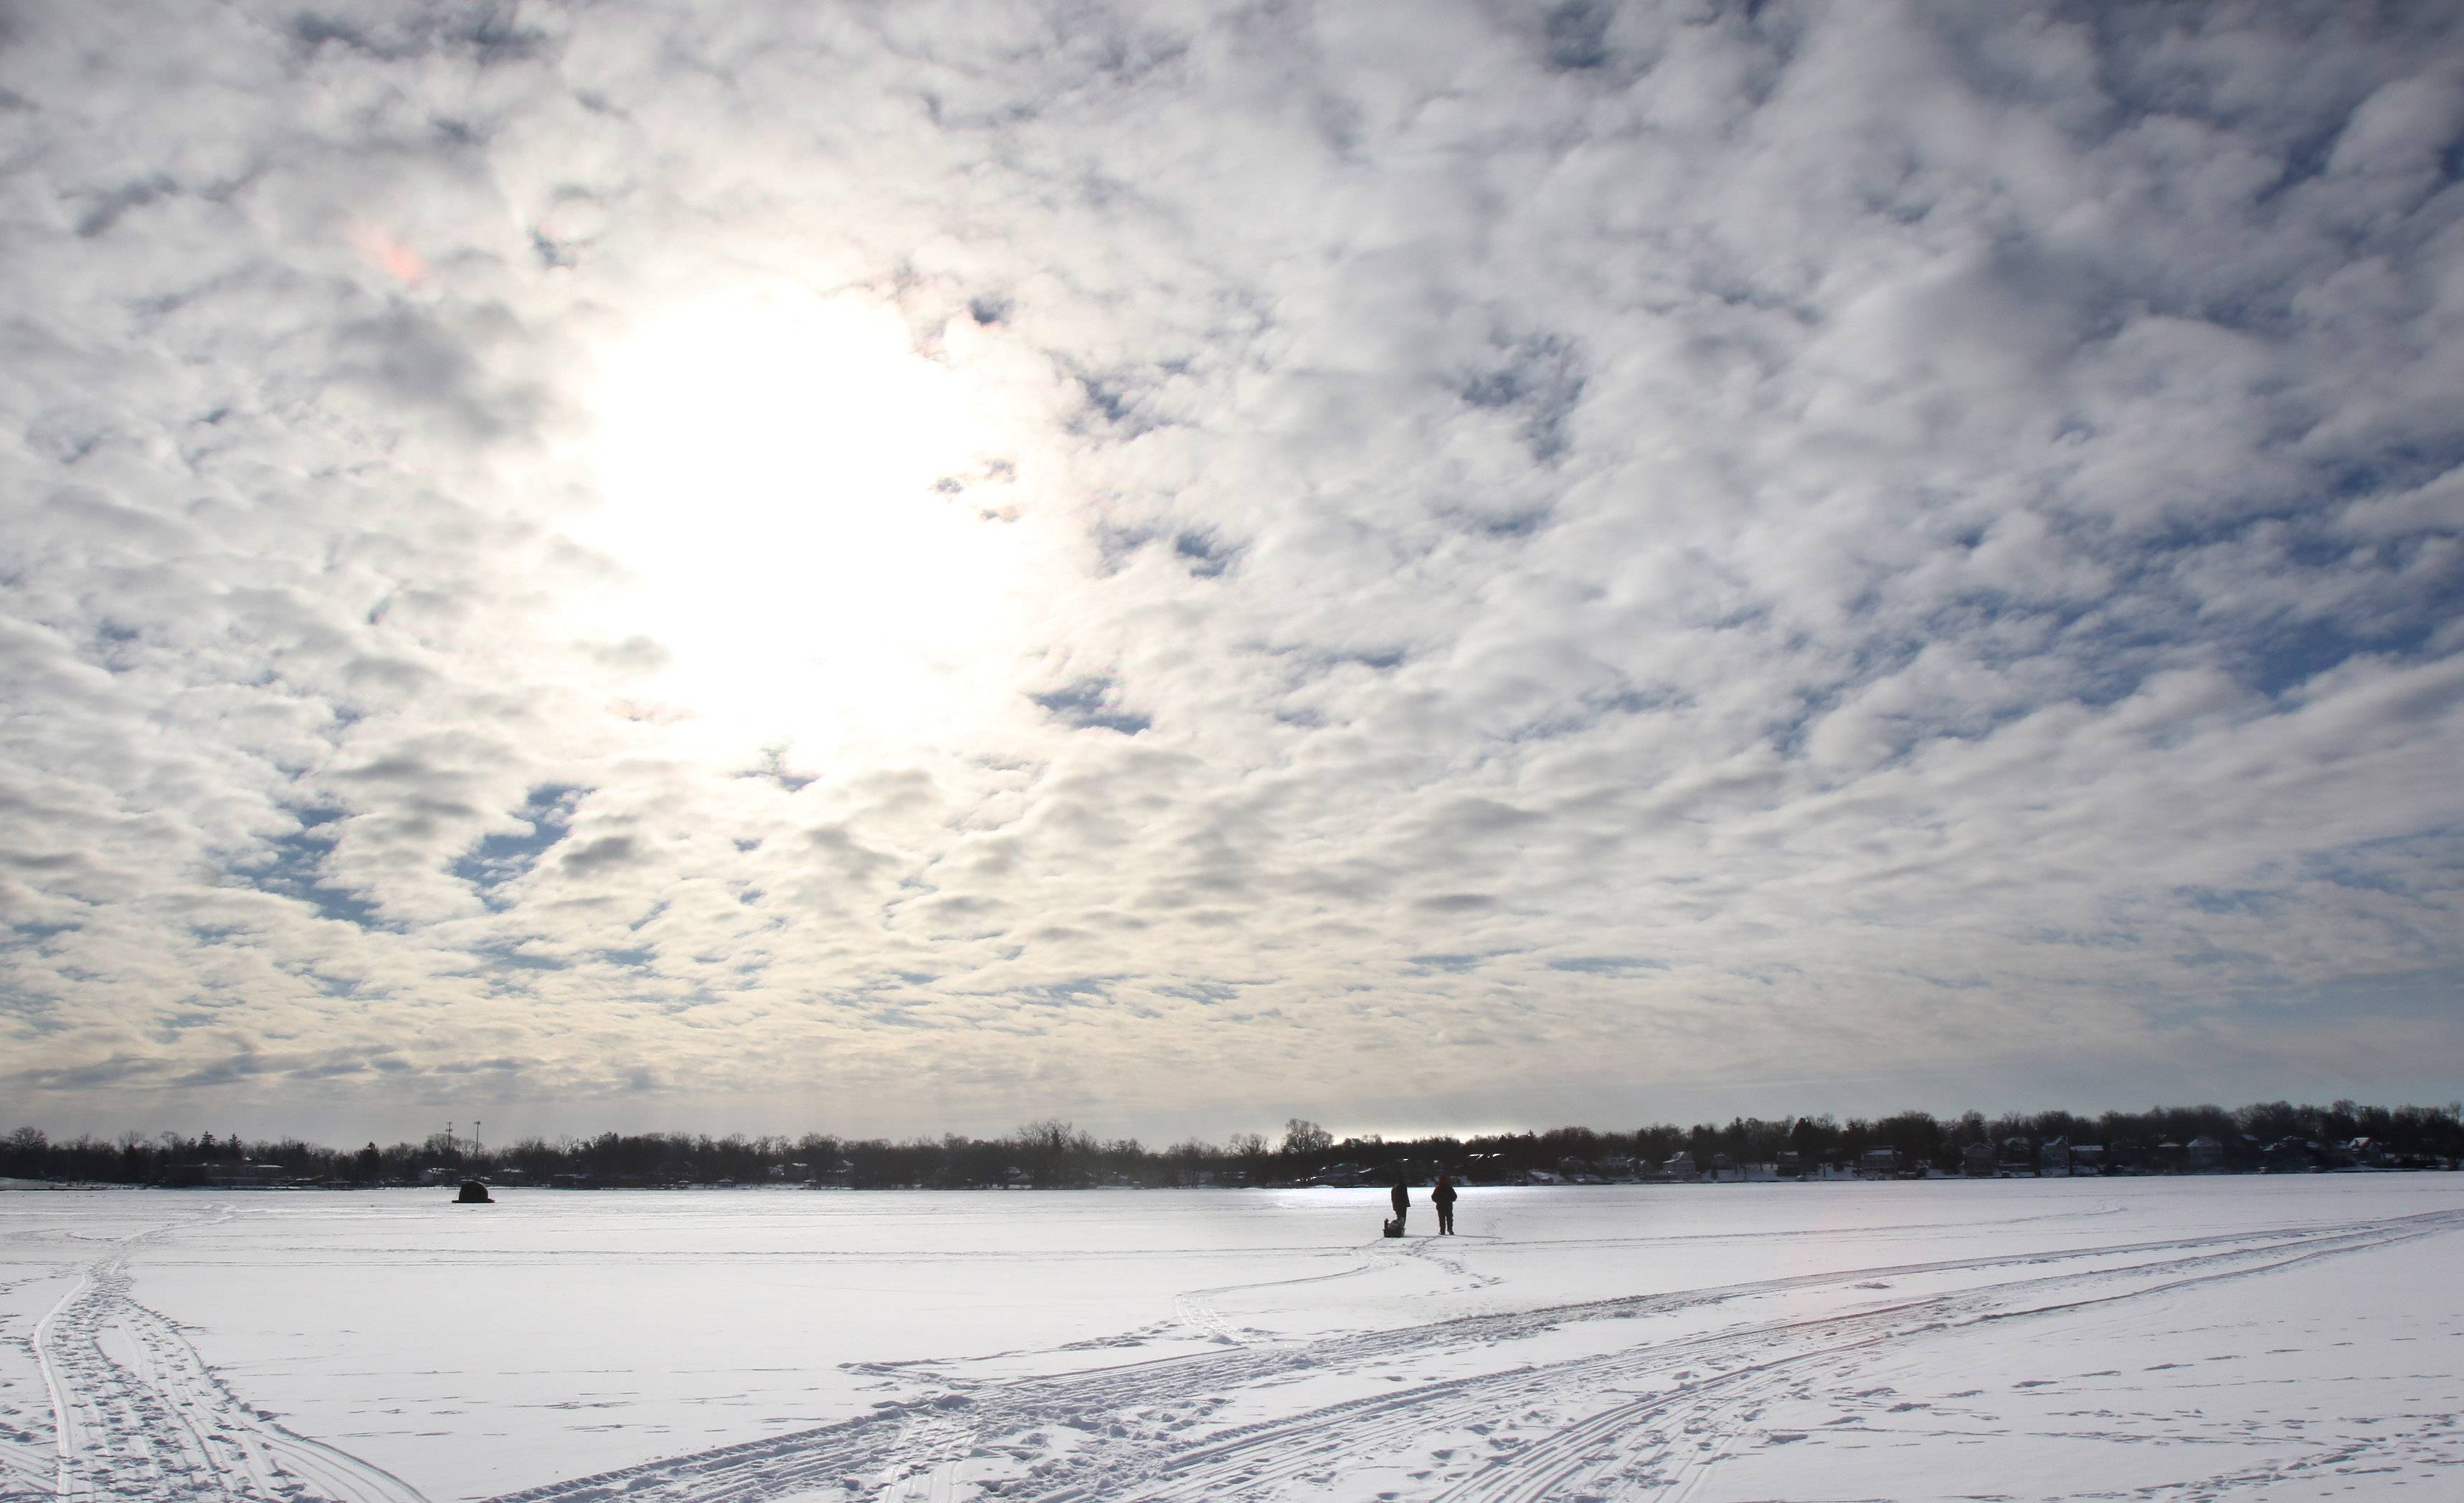 Andrius Janiukstys, left, and his father, Daugyidas of Mundelein, walk on the frozen ice on Diamond Lake in Mundelein as they go ice fishing Sunday. Extremely cold temperatures are expected throughout the week.